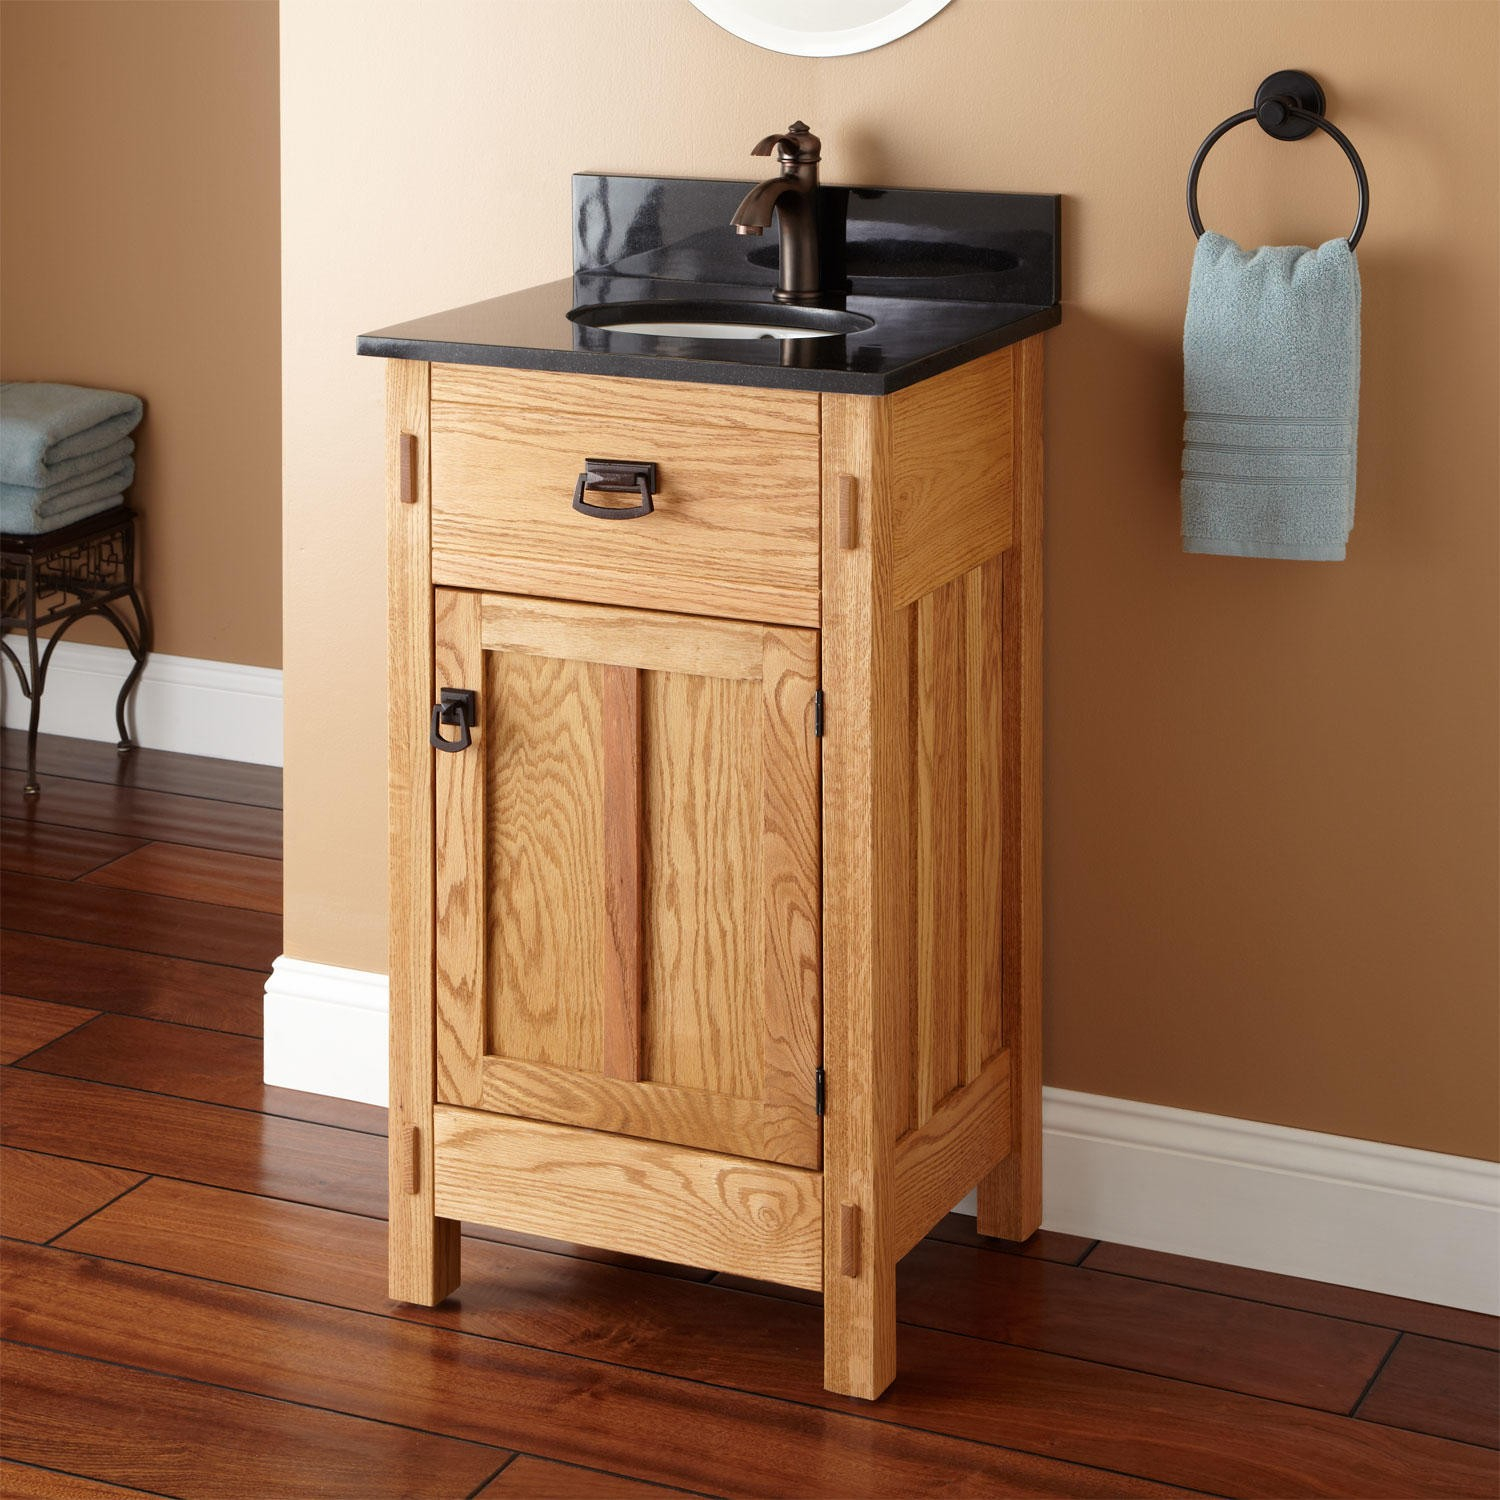 "Epic 19"" Mission Hardwood Vanity For Undermount Sink - Bathroom throughout Mission Style Bathroom Vanity"